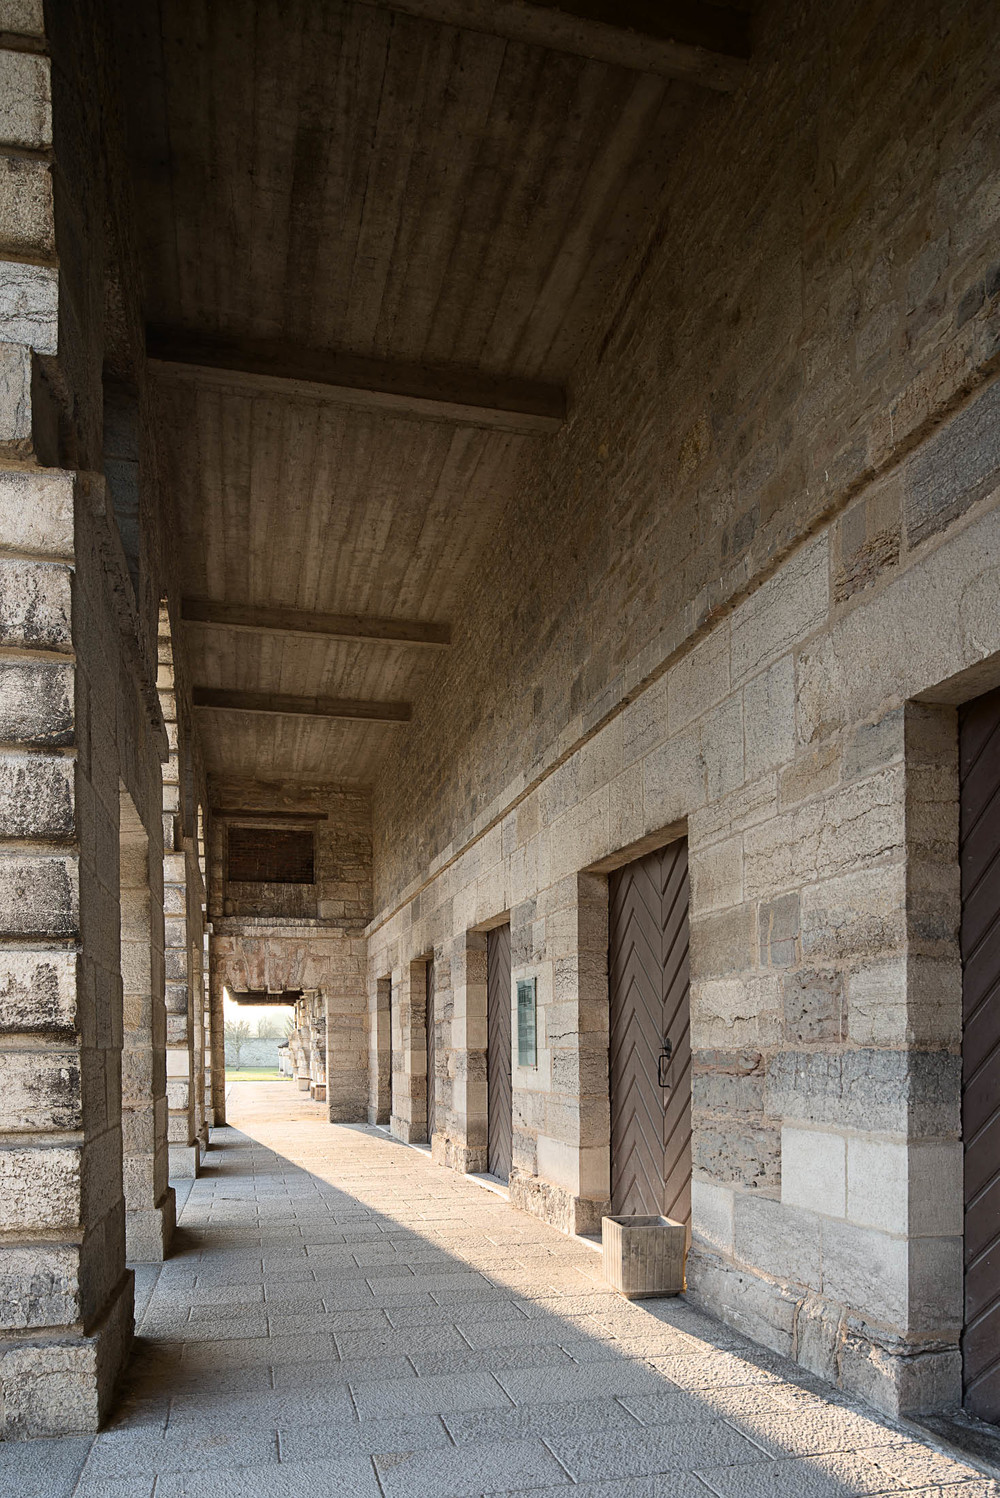 Covered porch of a production building |  Colonnade d'un bâtiment de production.